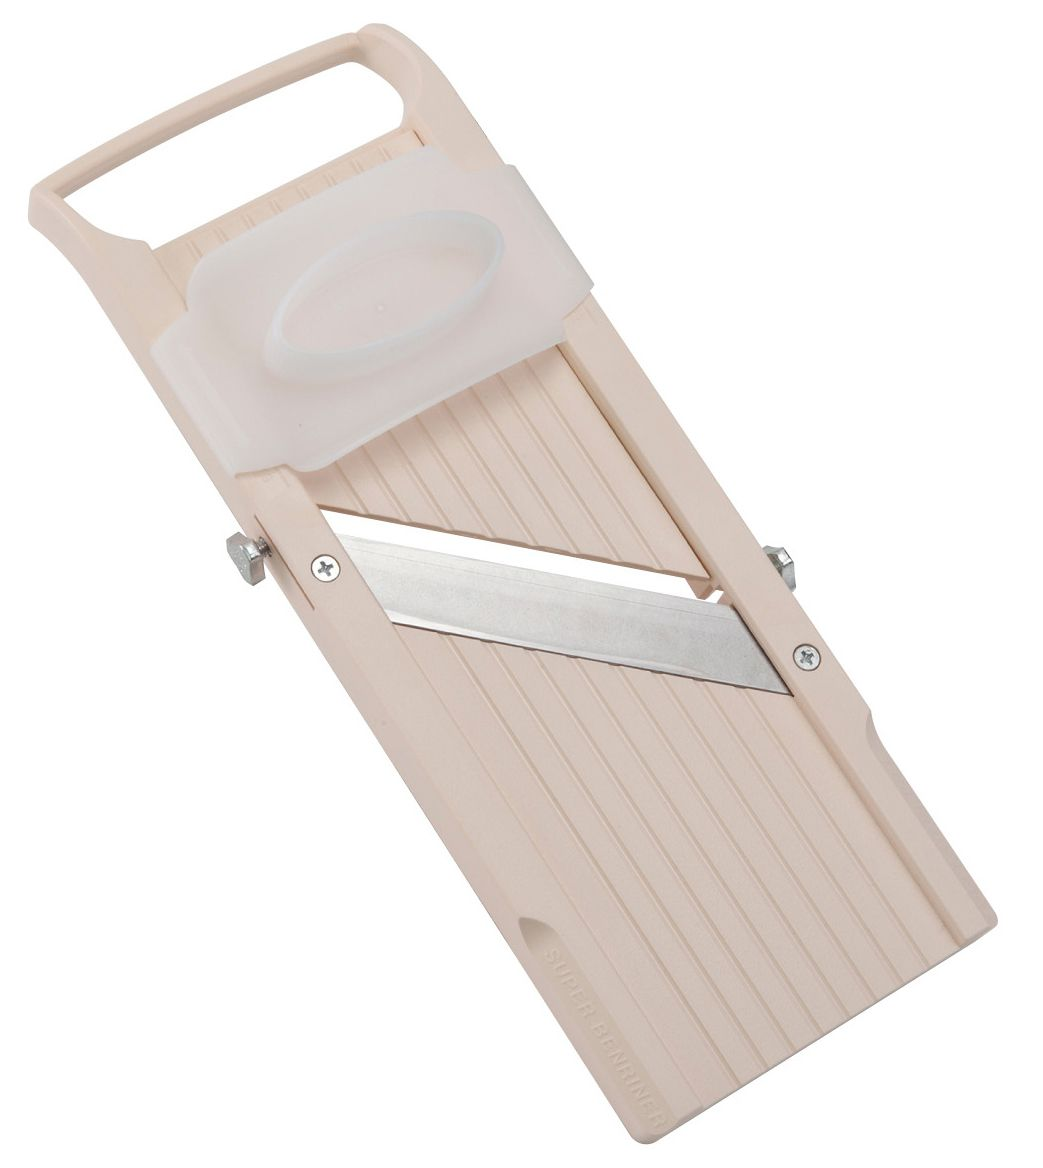 Photo Japanese mandoline slicer - standard range